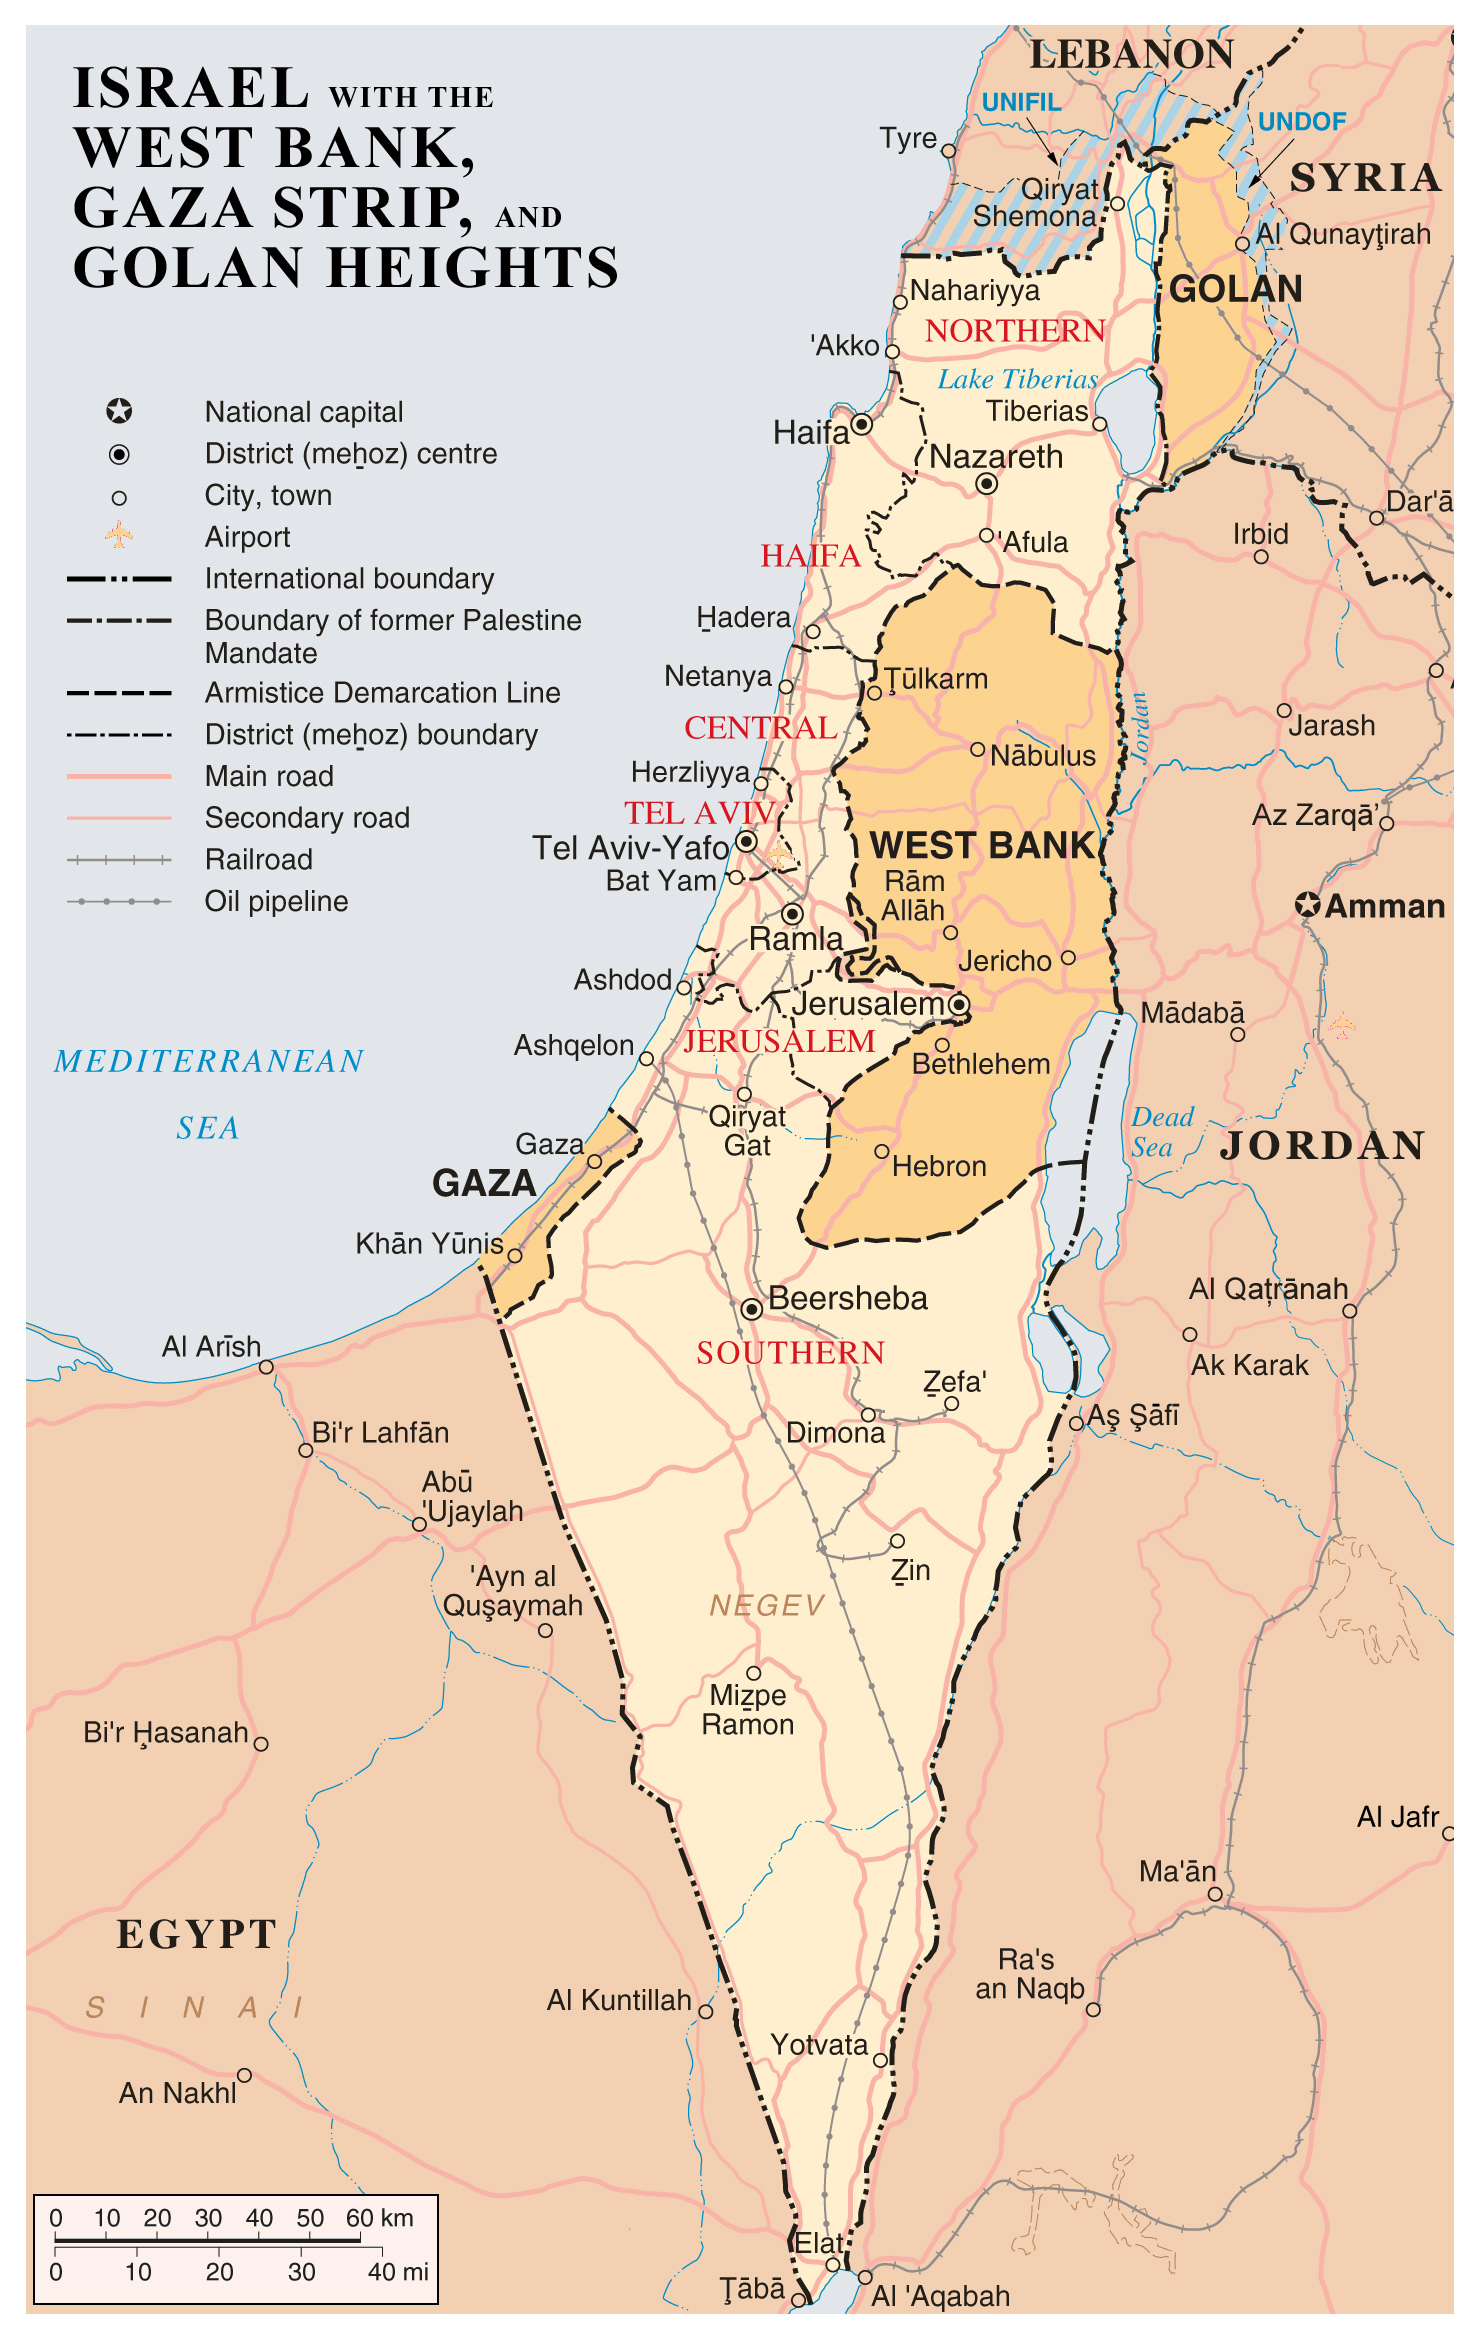 Maps of gaza strip detailed map of gaza strip in english road large detailed map of israel with the west bank gaza strip and golgan heights gumiabroncs Images